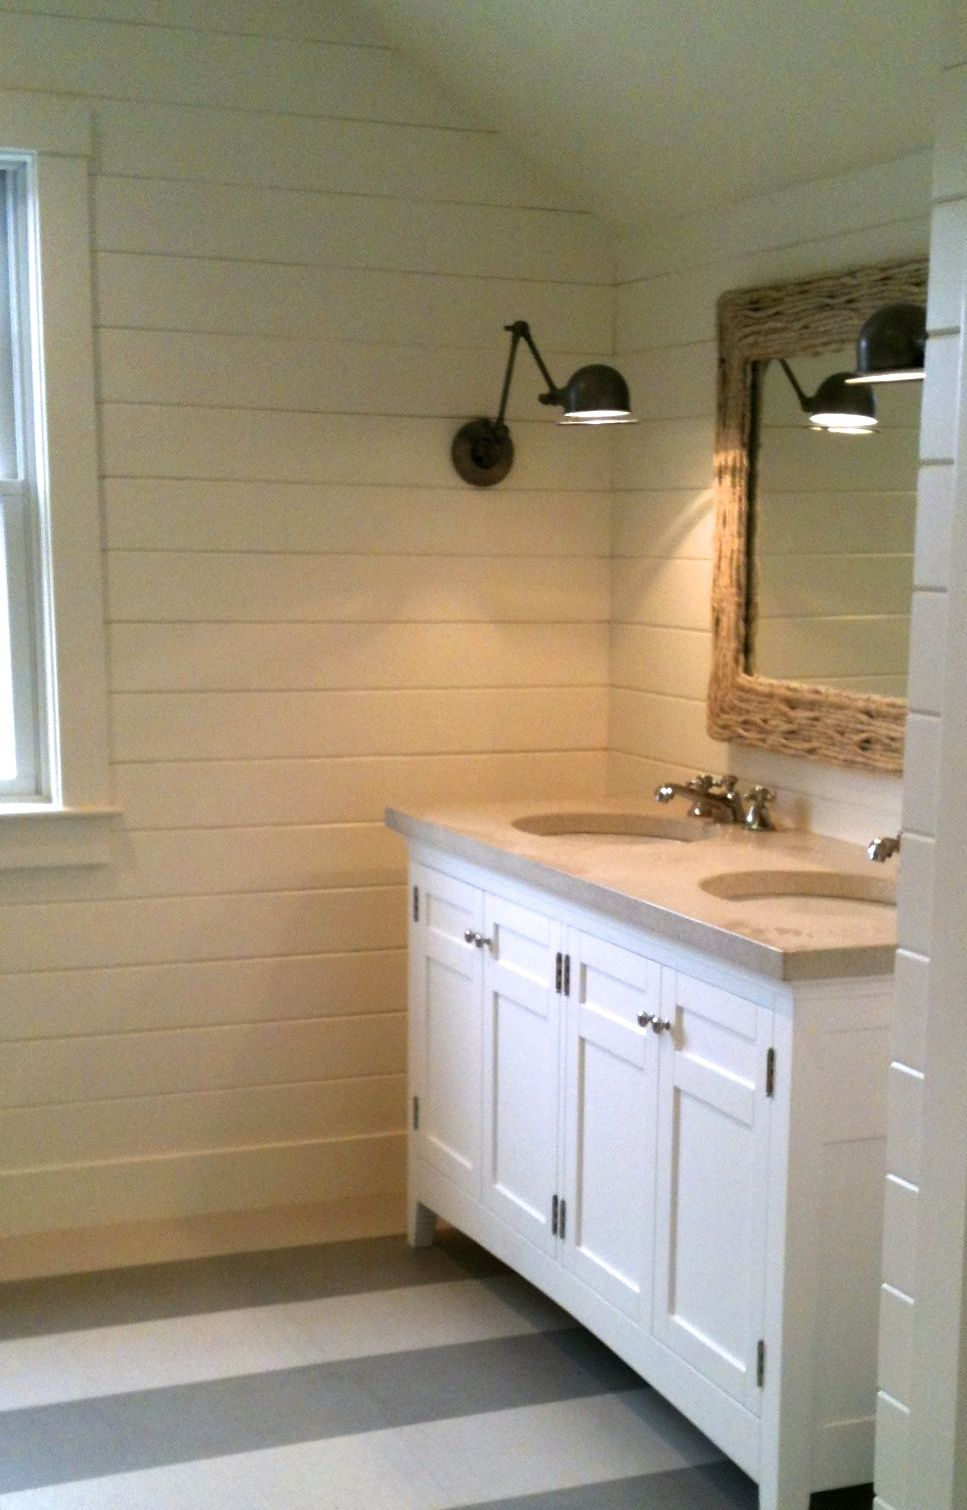 Cape Cod Bathroom Design With Floor Tiles In Gray/white Stripes / By Lisa K